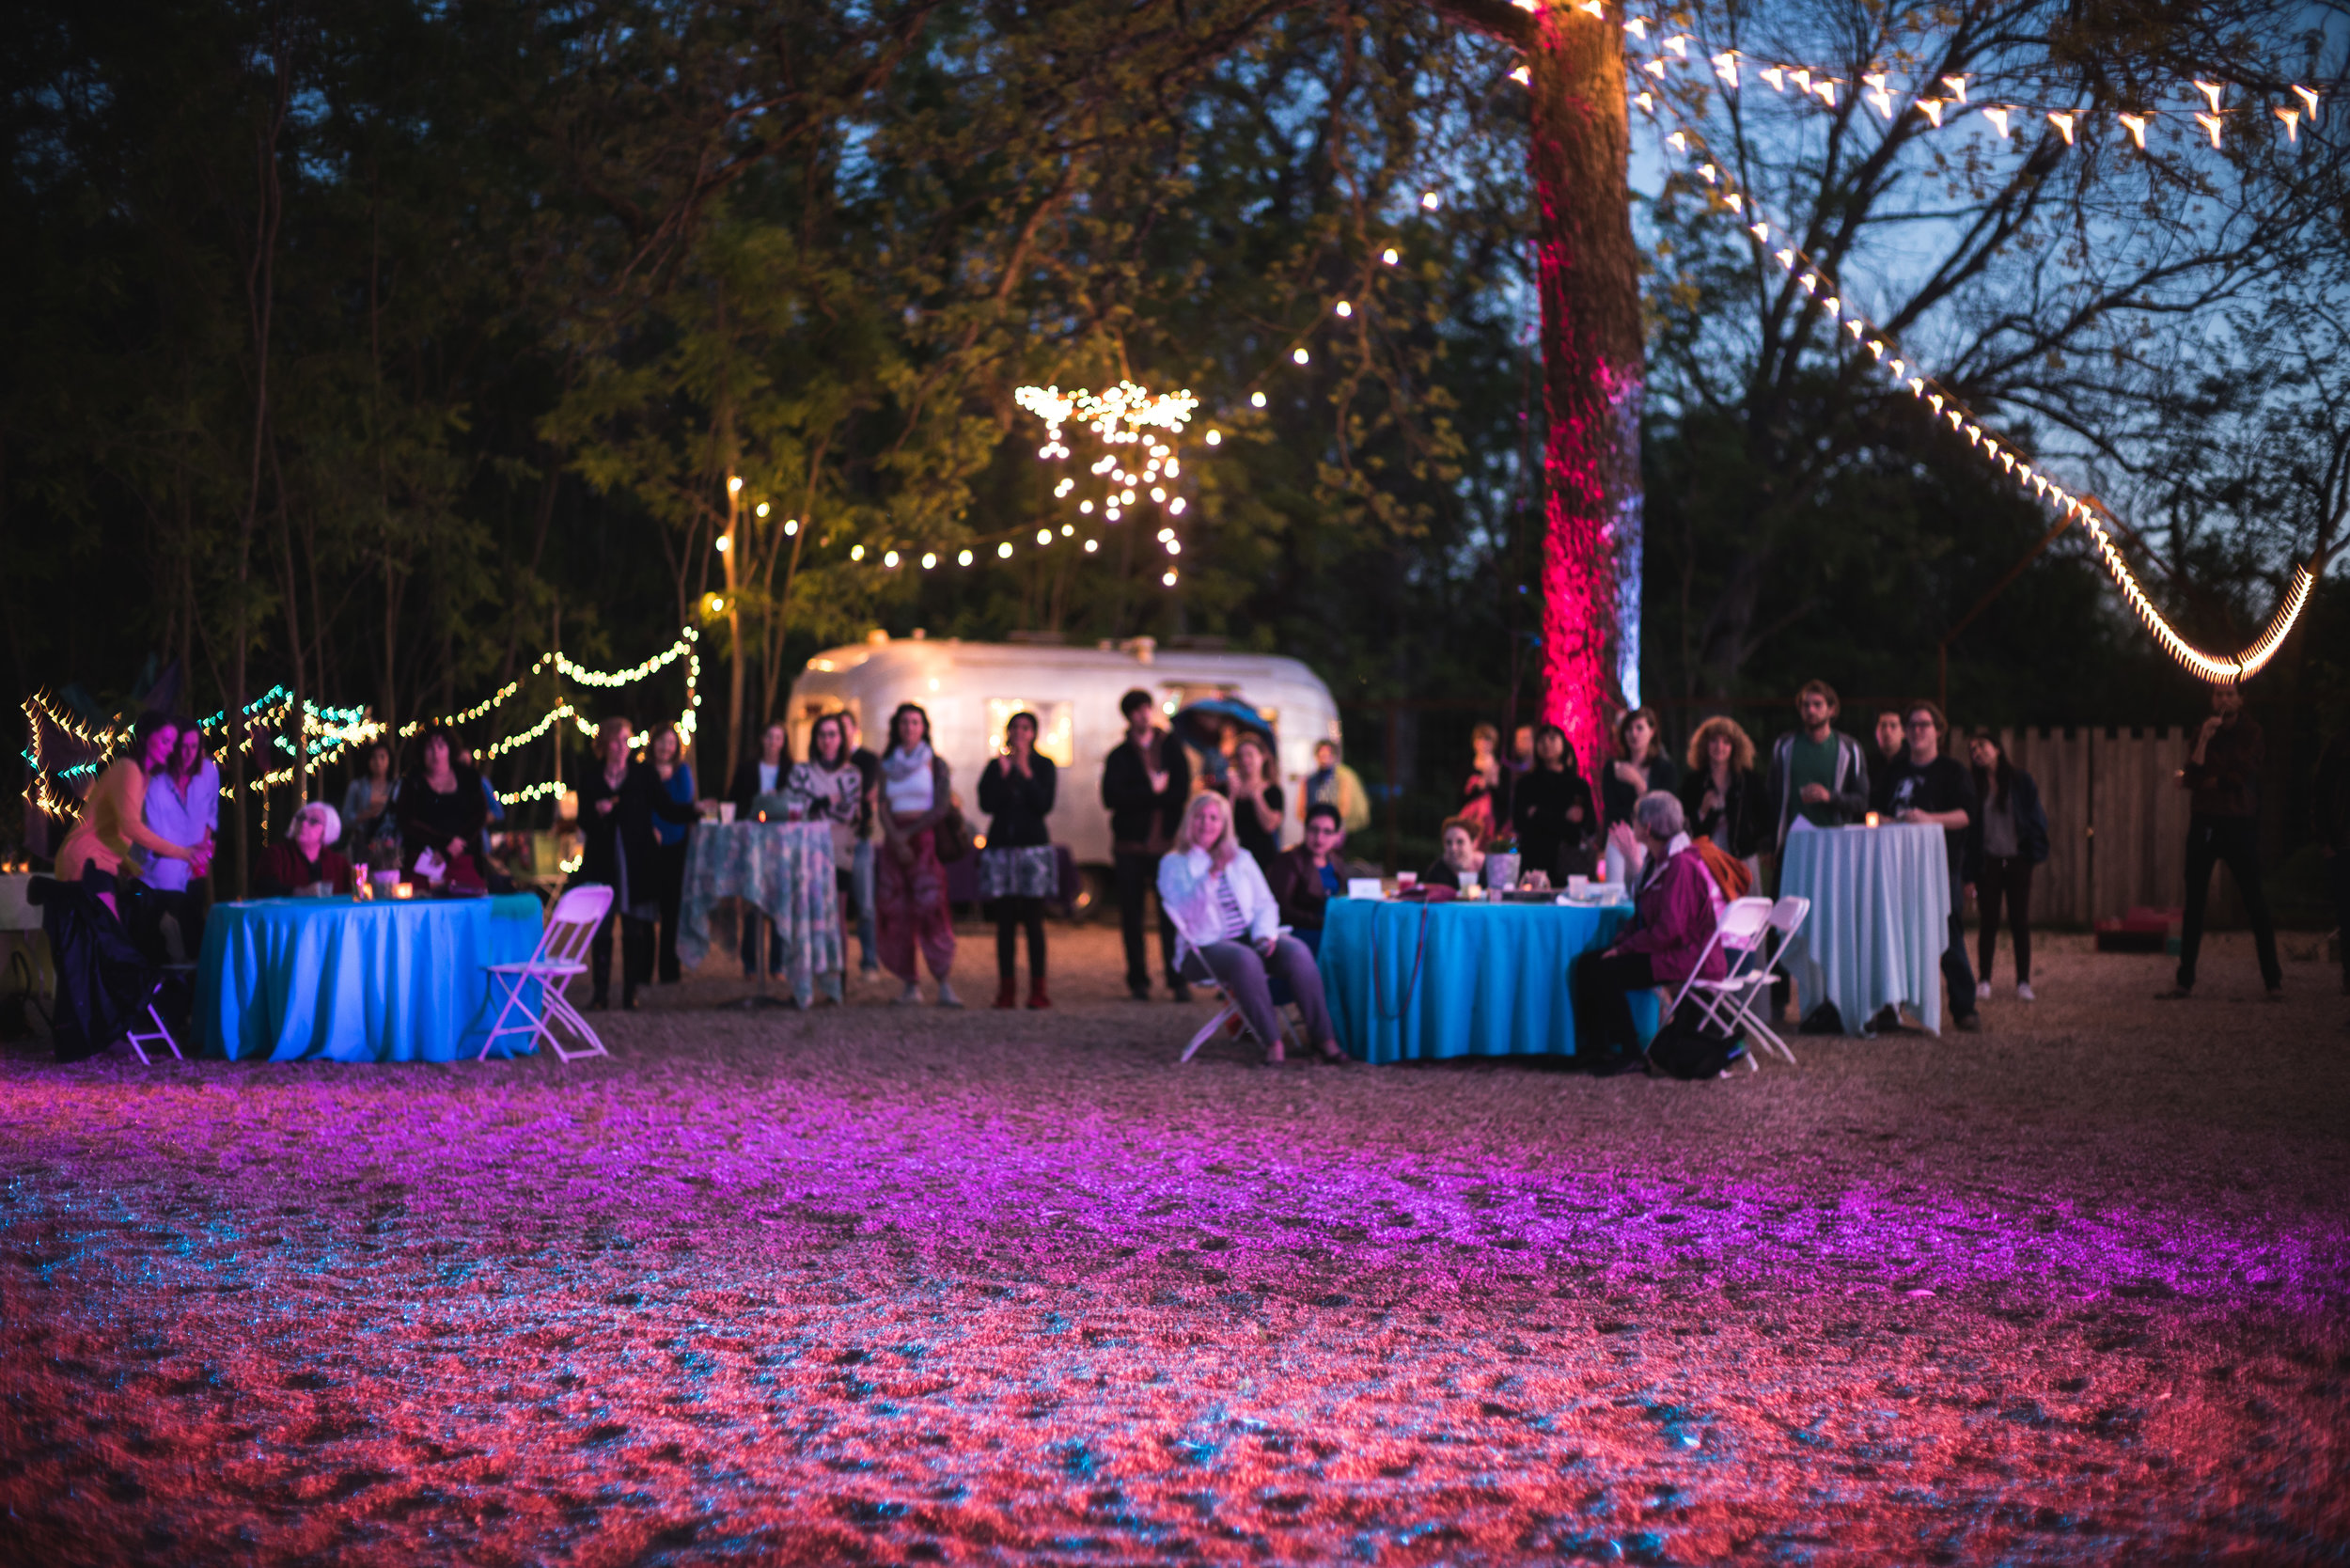 Austin theater event outside with dance and entertainment